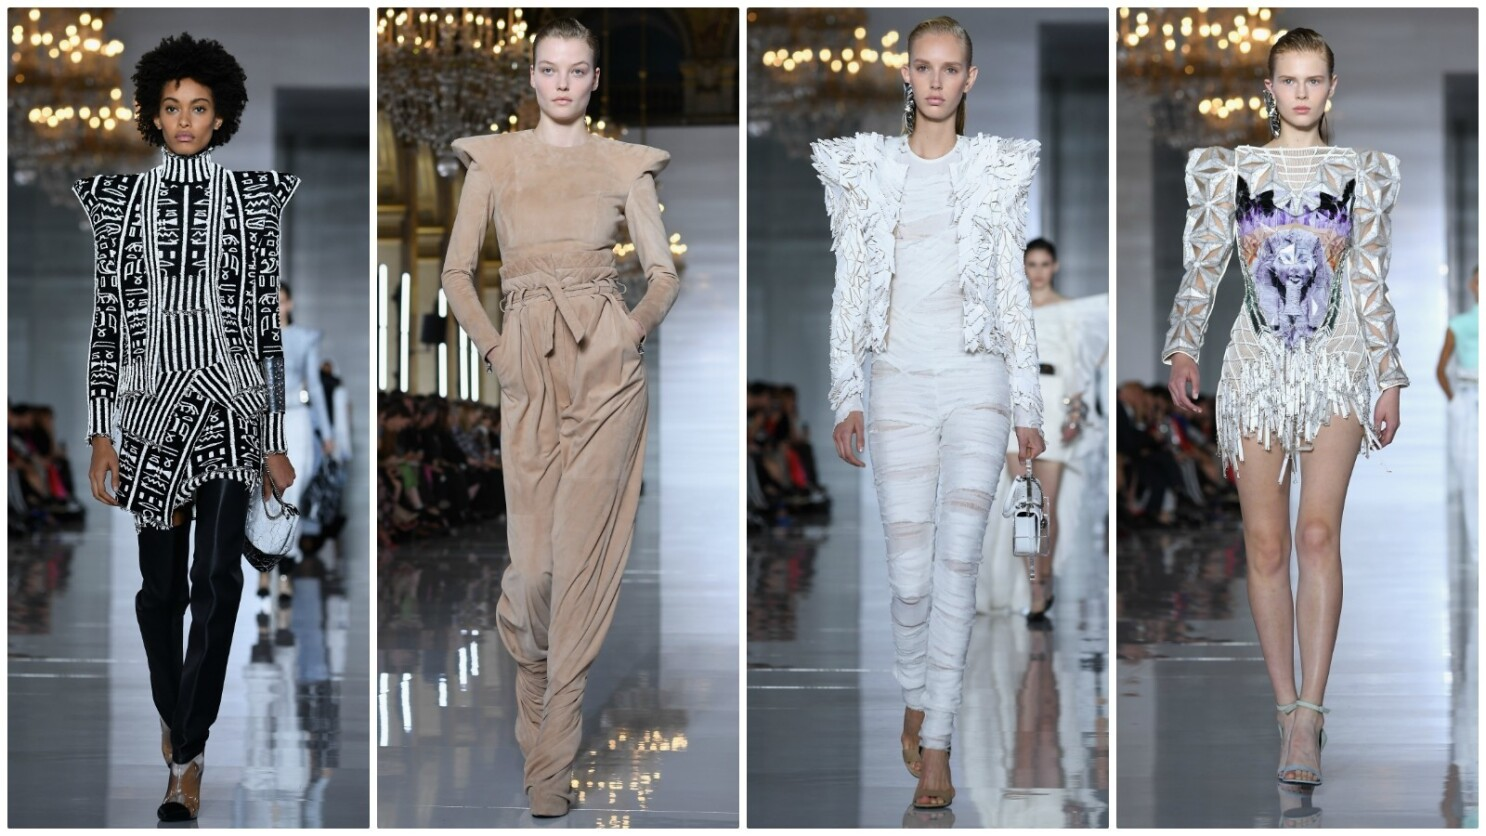 Paris Fashion Week Balmain S Spring And Summer 2019 Collection Has Egyptian Mummy Issues Los Angeles Times